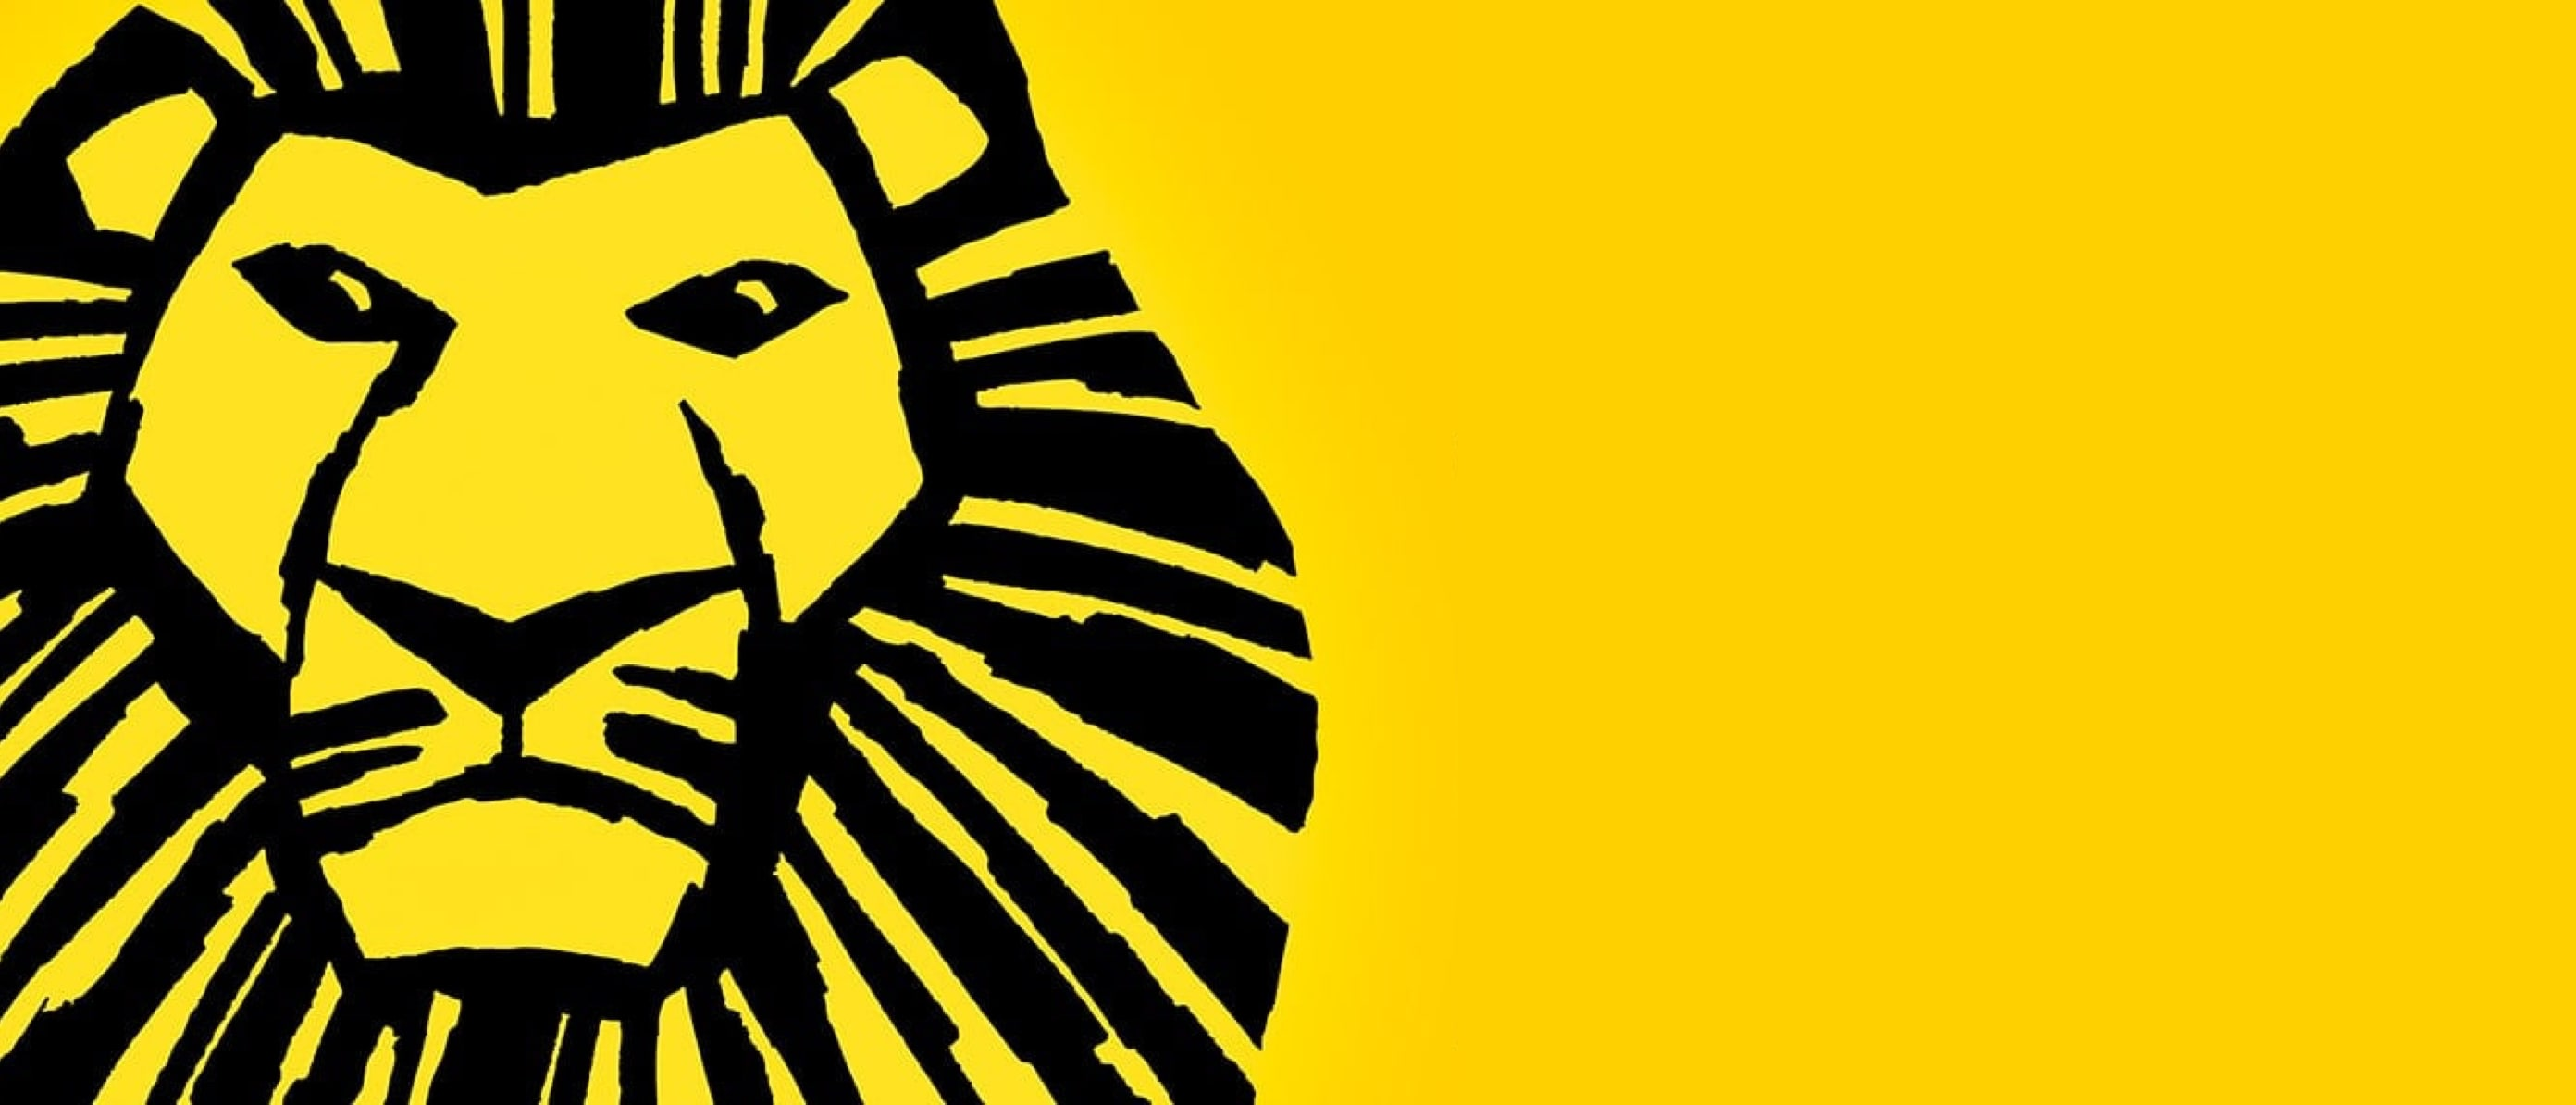 Book tickets for The Lion King on Tour with Disney Tickets